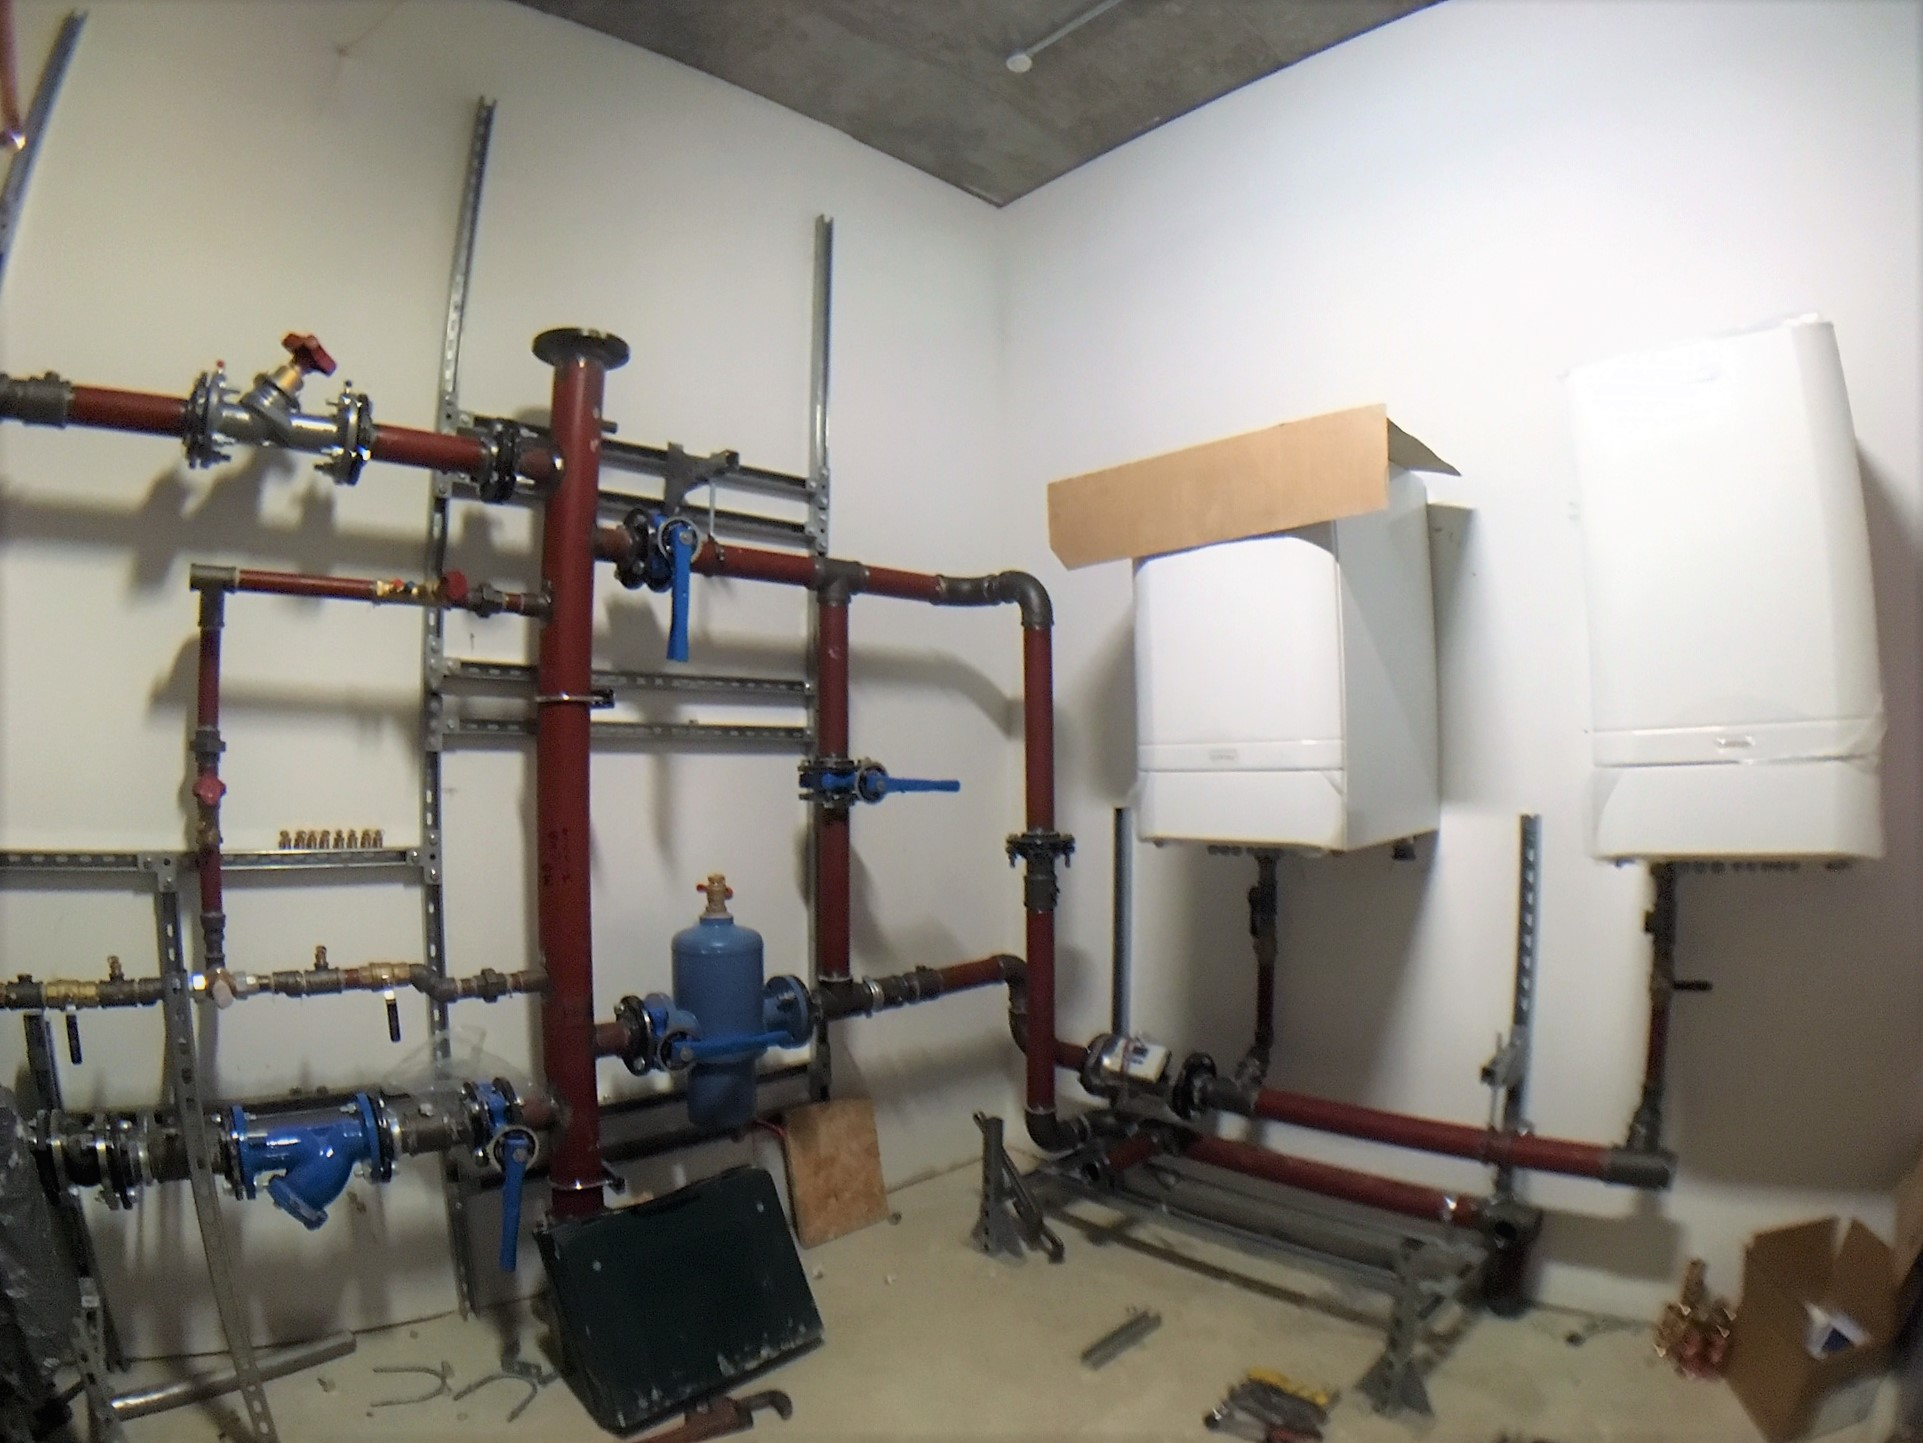 Sutton Secondary School - tiny boilers